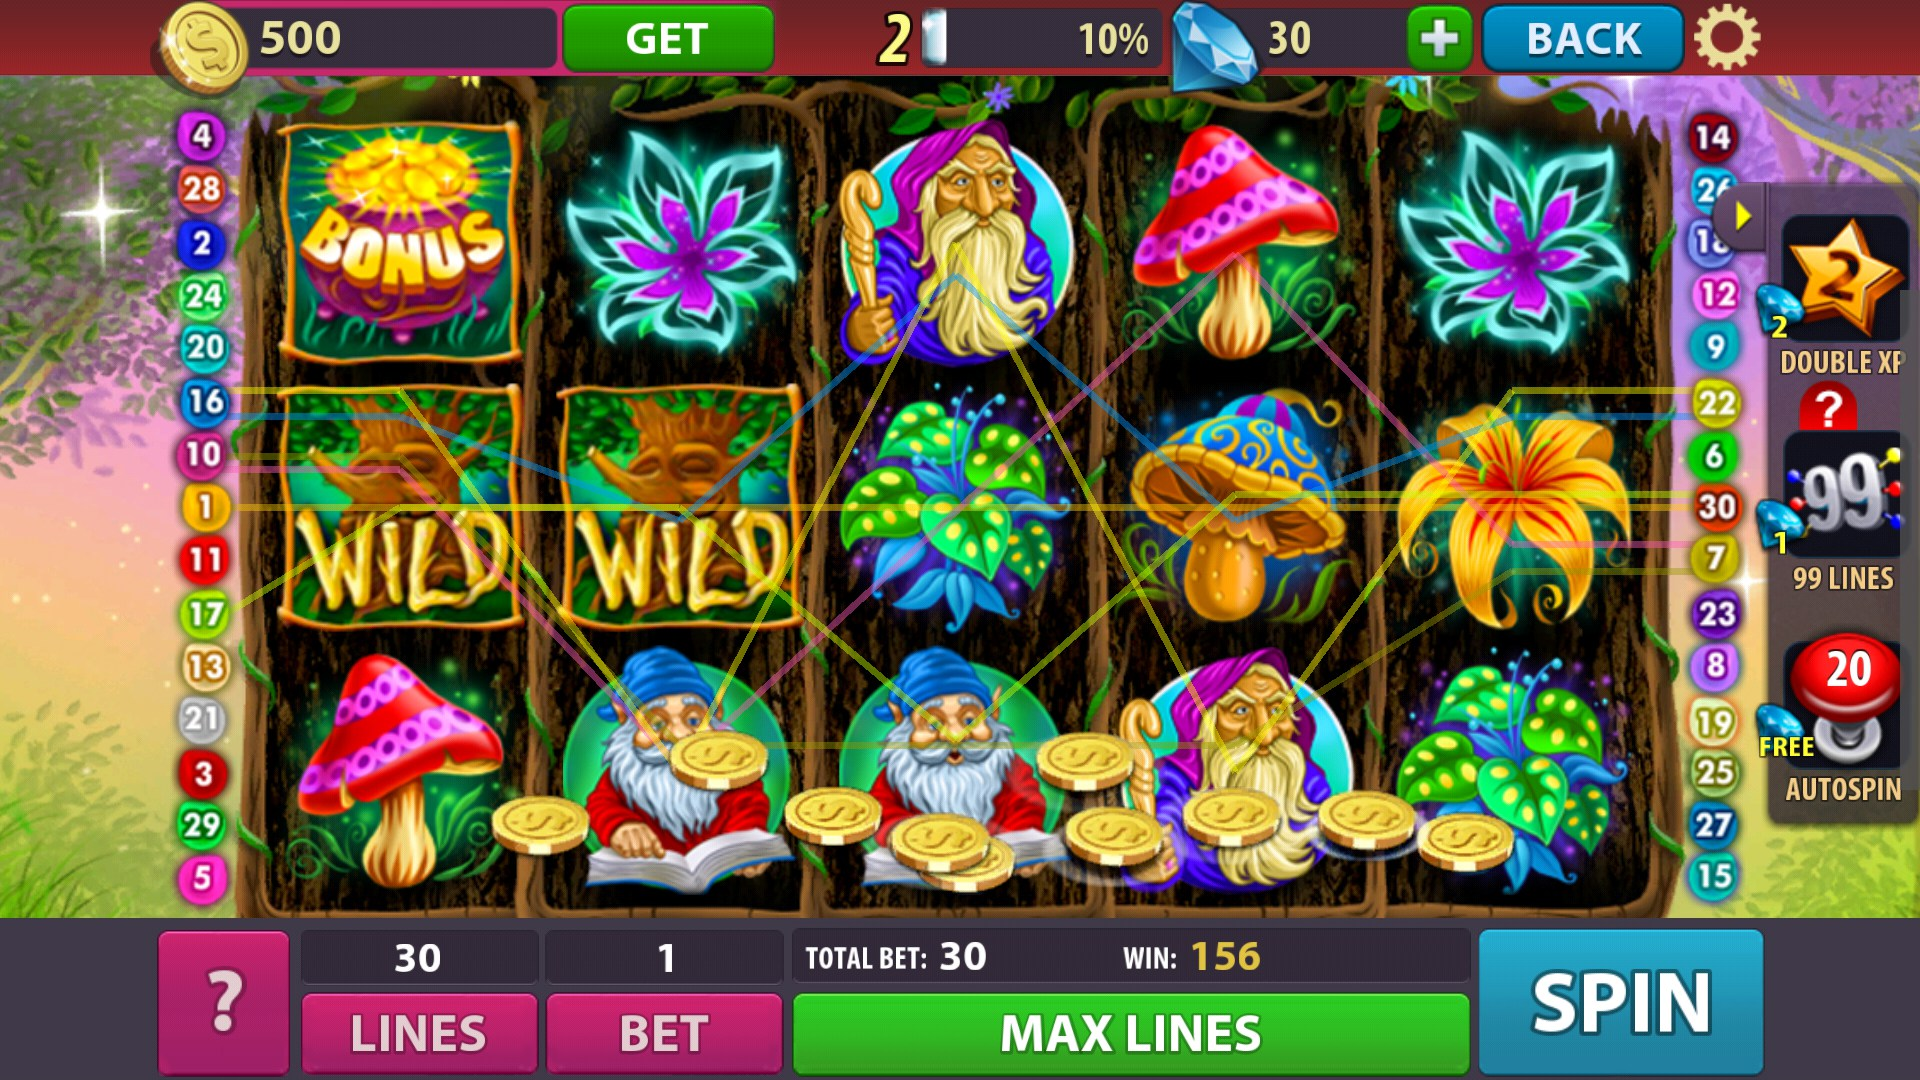 HTC Slot Machines – Play Slot Games on HTC Smartphones